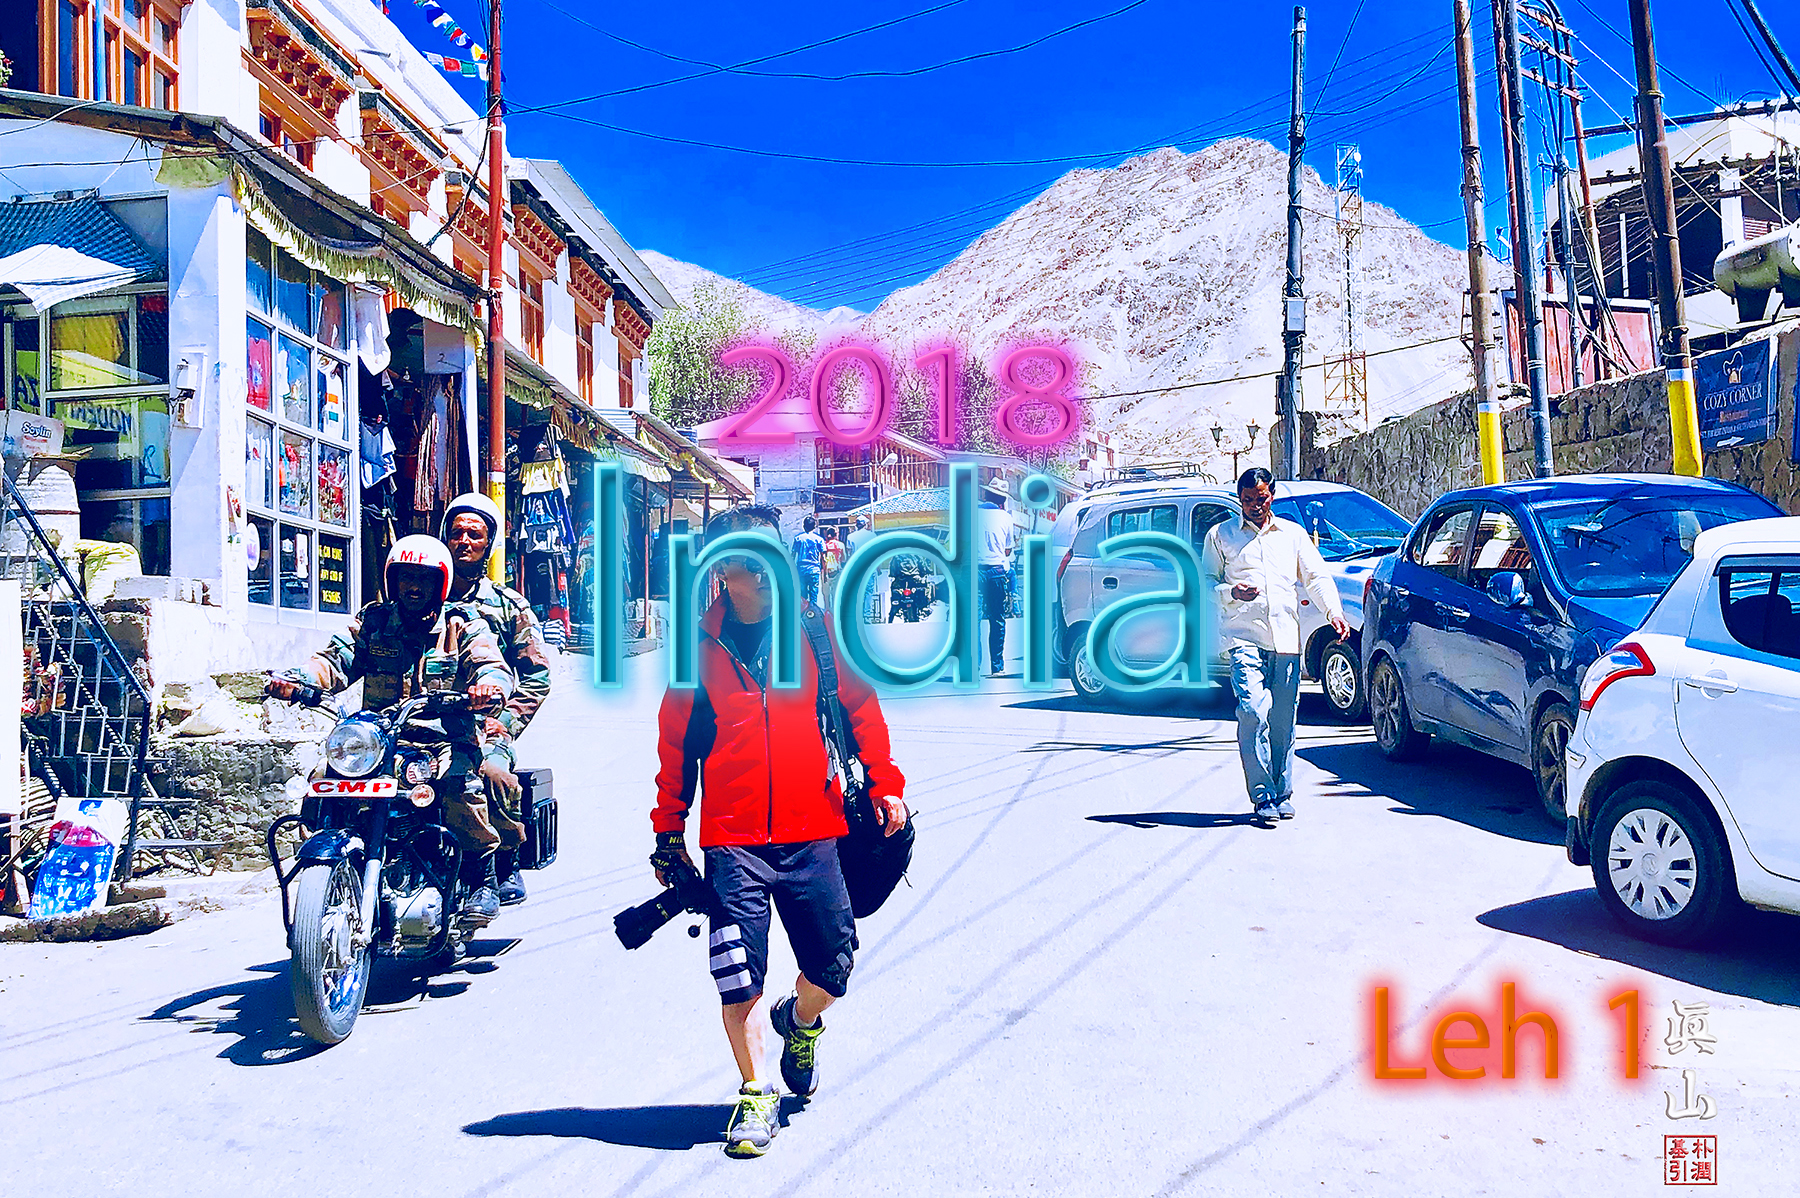 2018 India Tour - Leh 1, 7th day